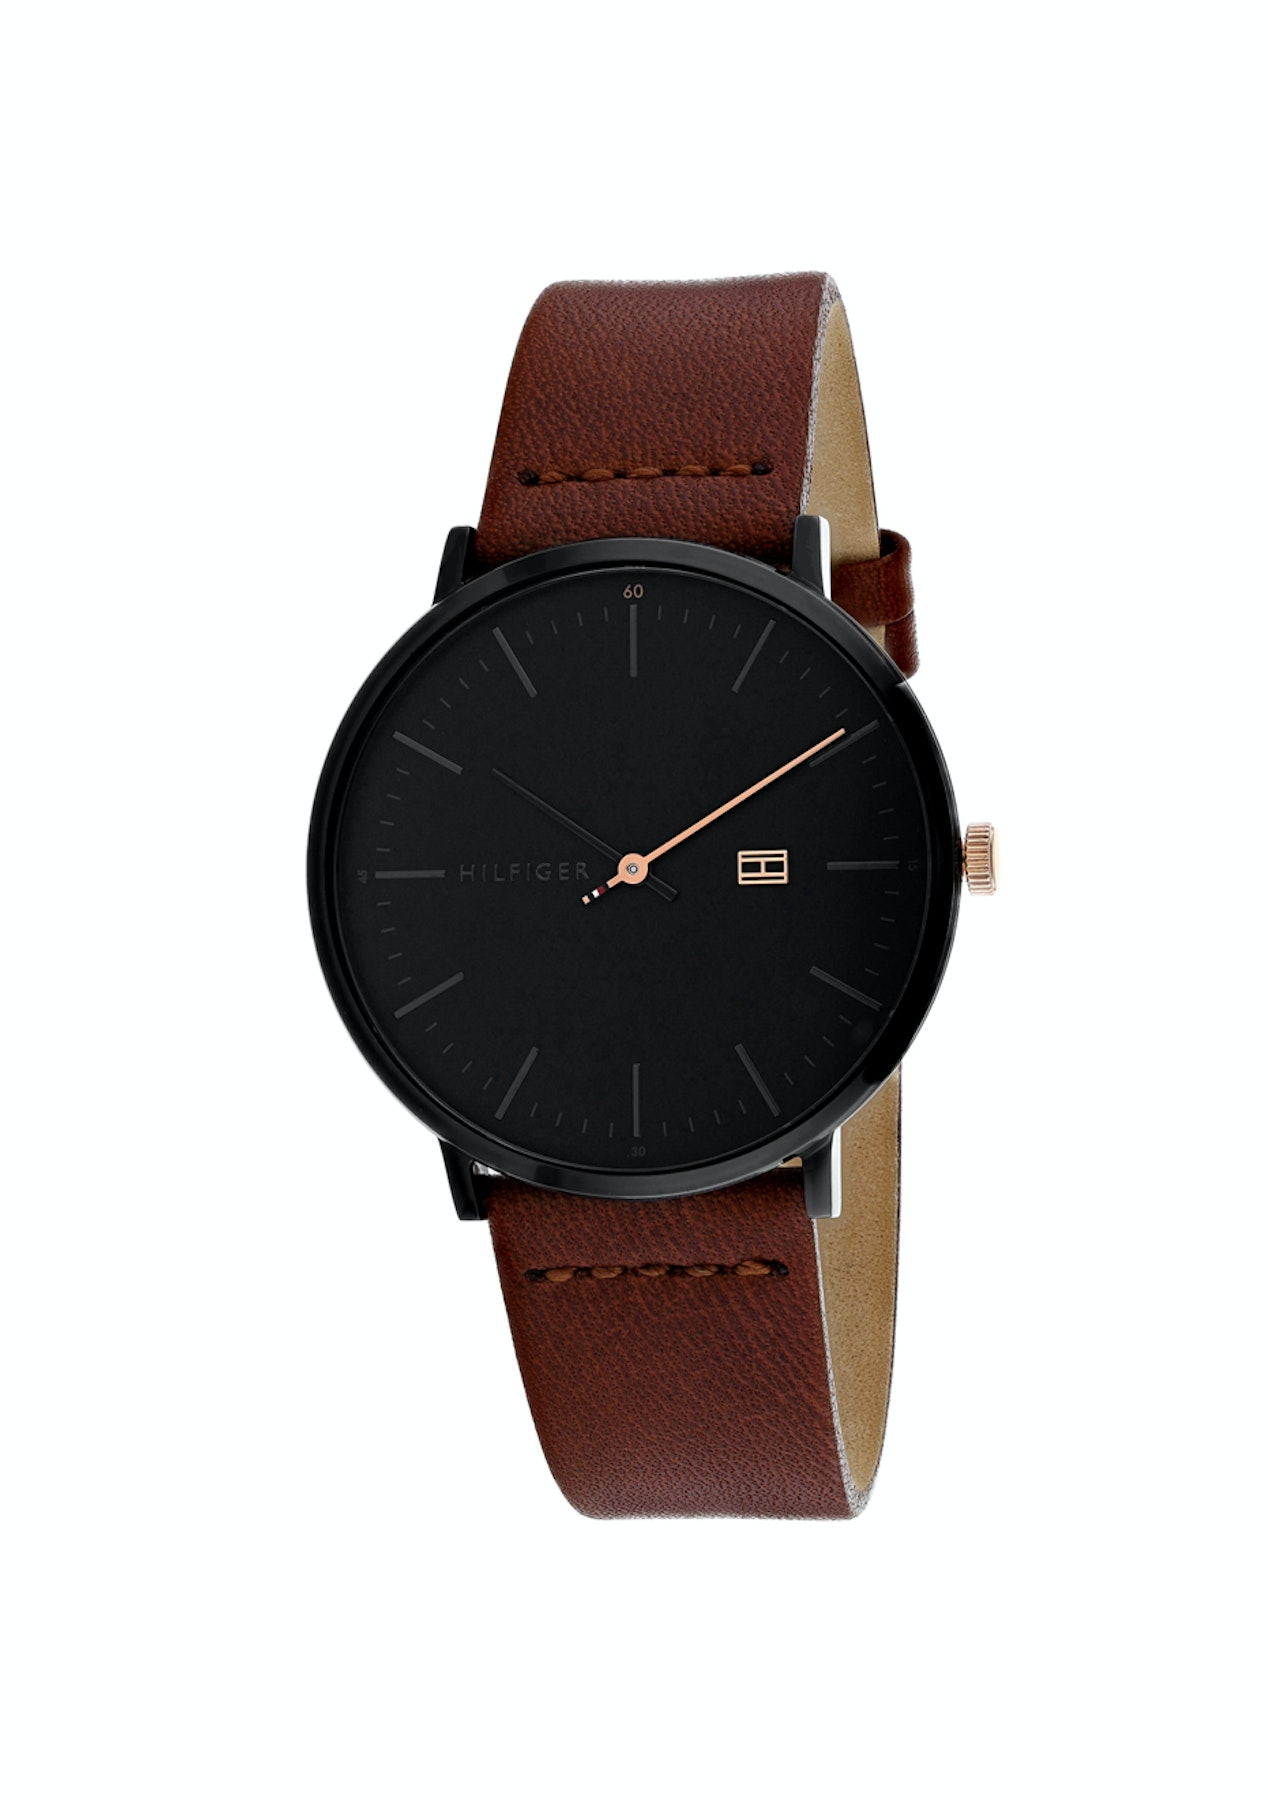 e2cecdfd Tommy Hilfiger - James 40mm - Mens - Black/Brown - Jewellery & Watch Gift  Guide - Onceit